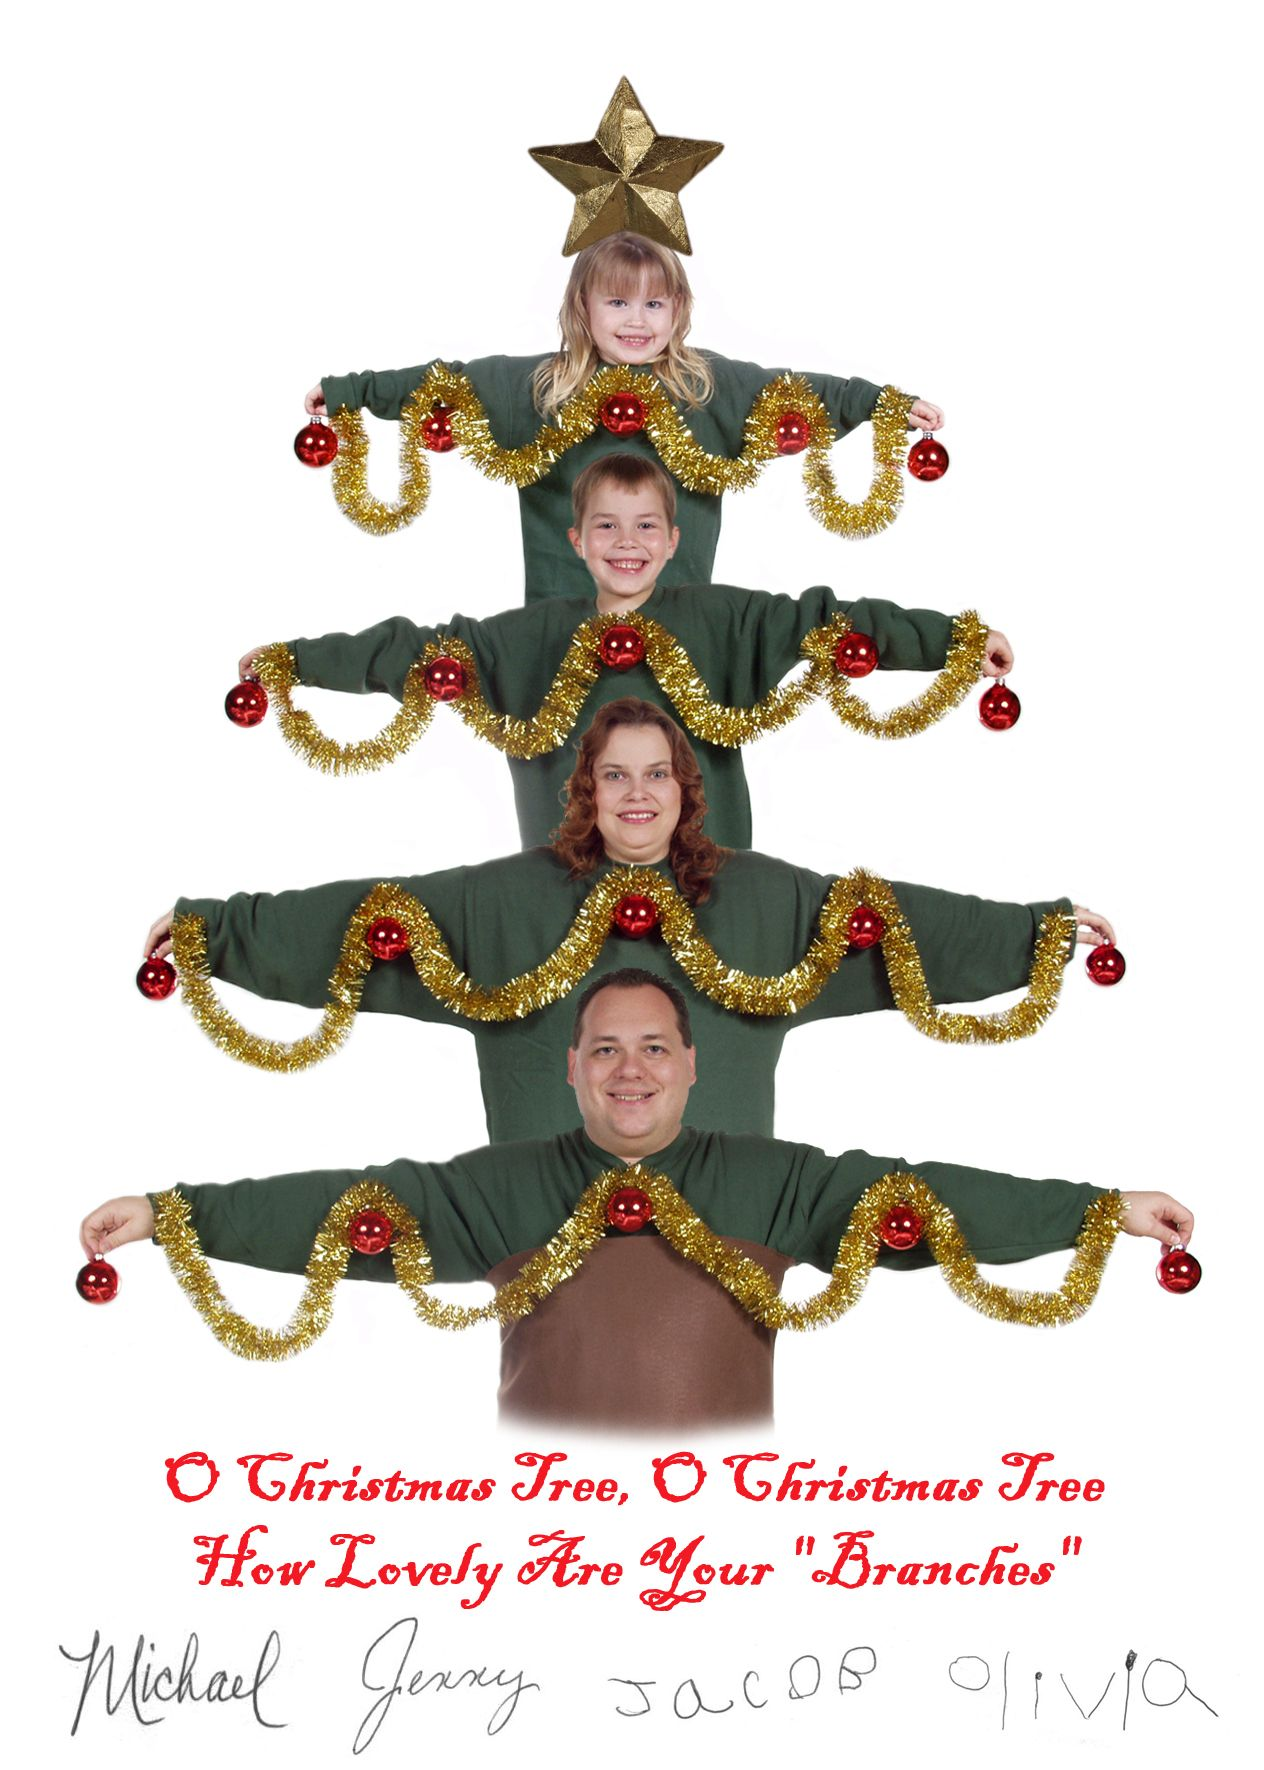 2003 O Christmas Tree O Christmas Tree How Lovely Are Your Branches Christmas Humor Funny Christmas Photos Family Christmas Pictures